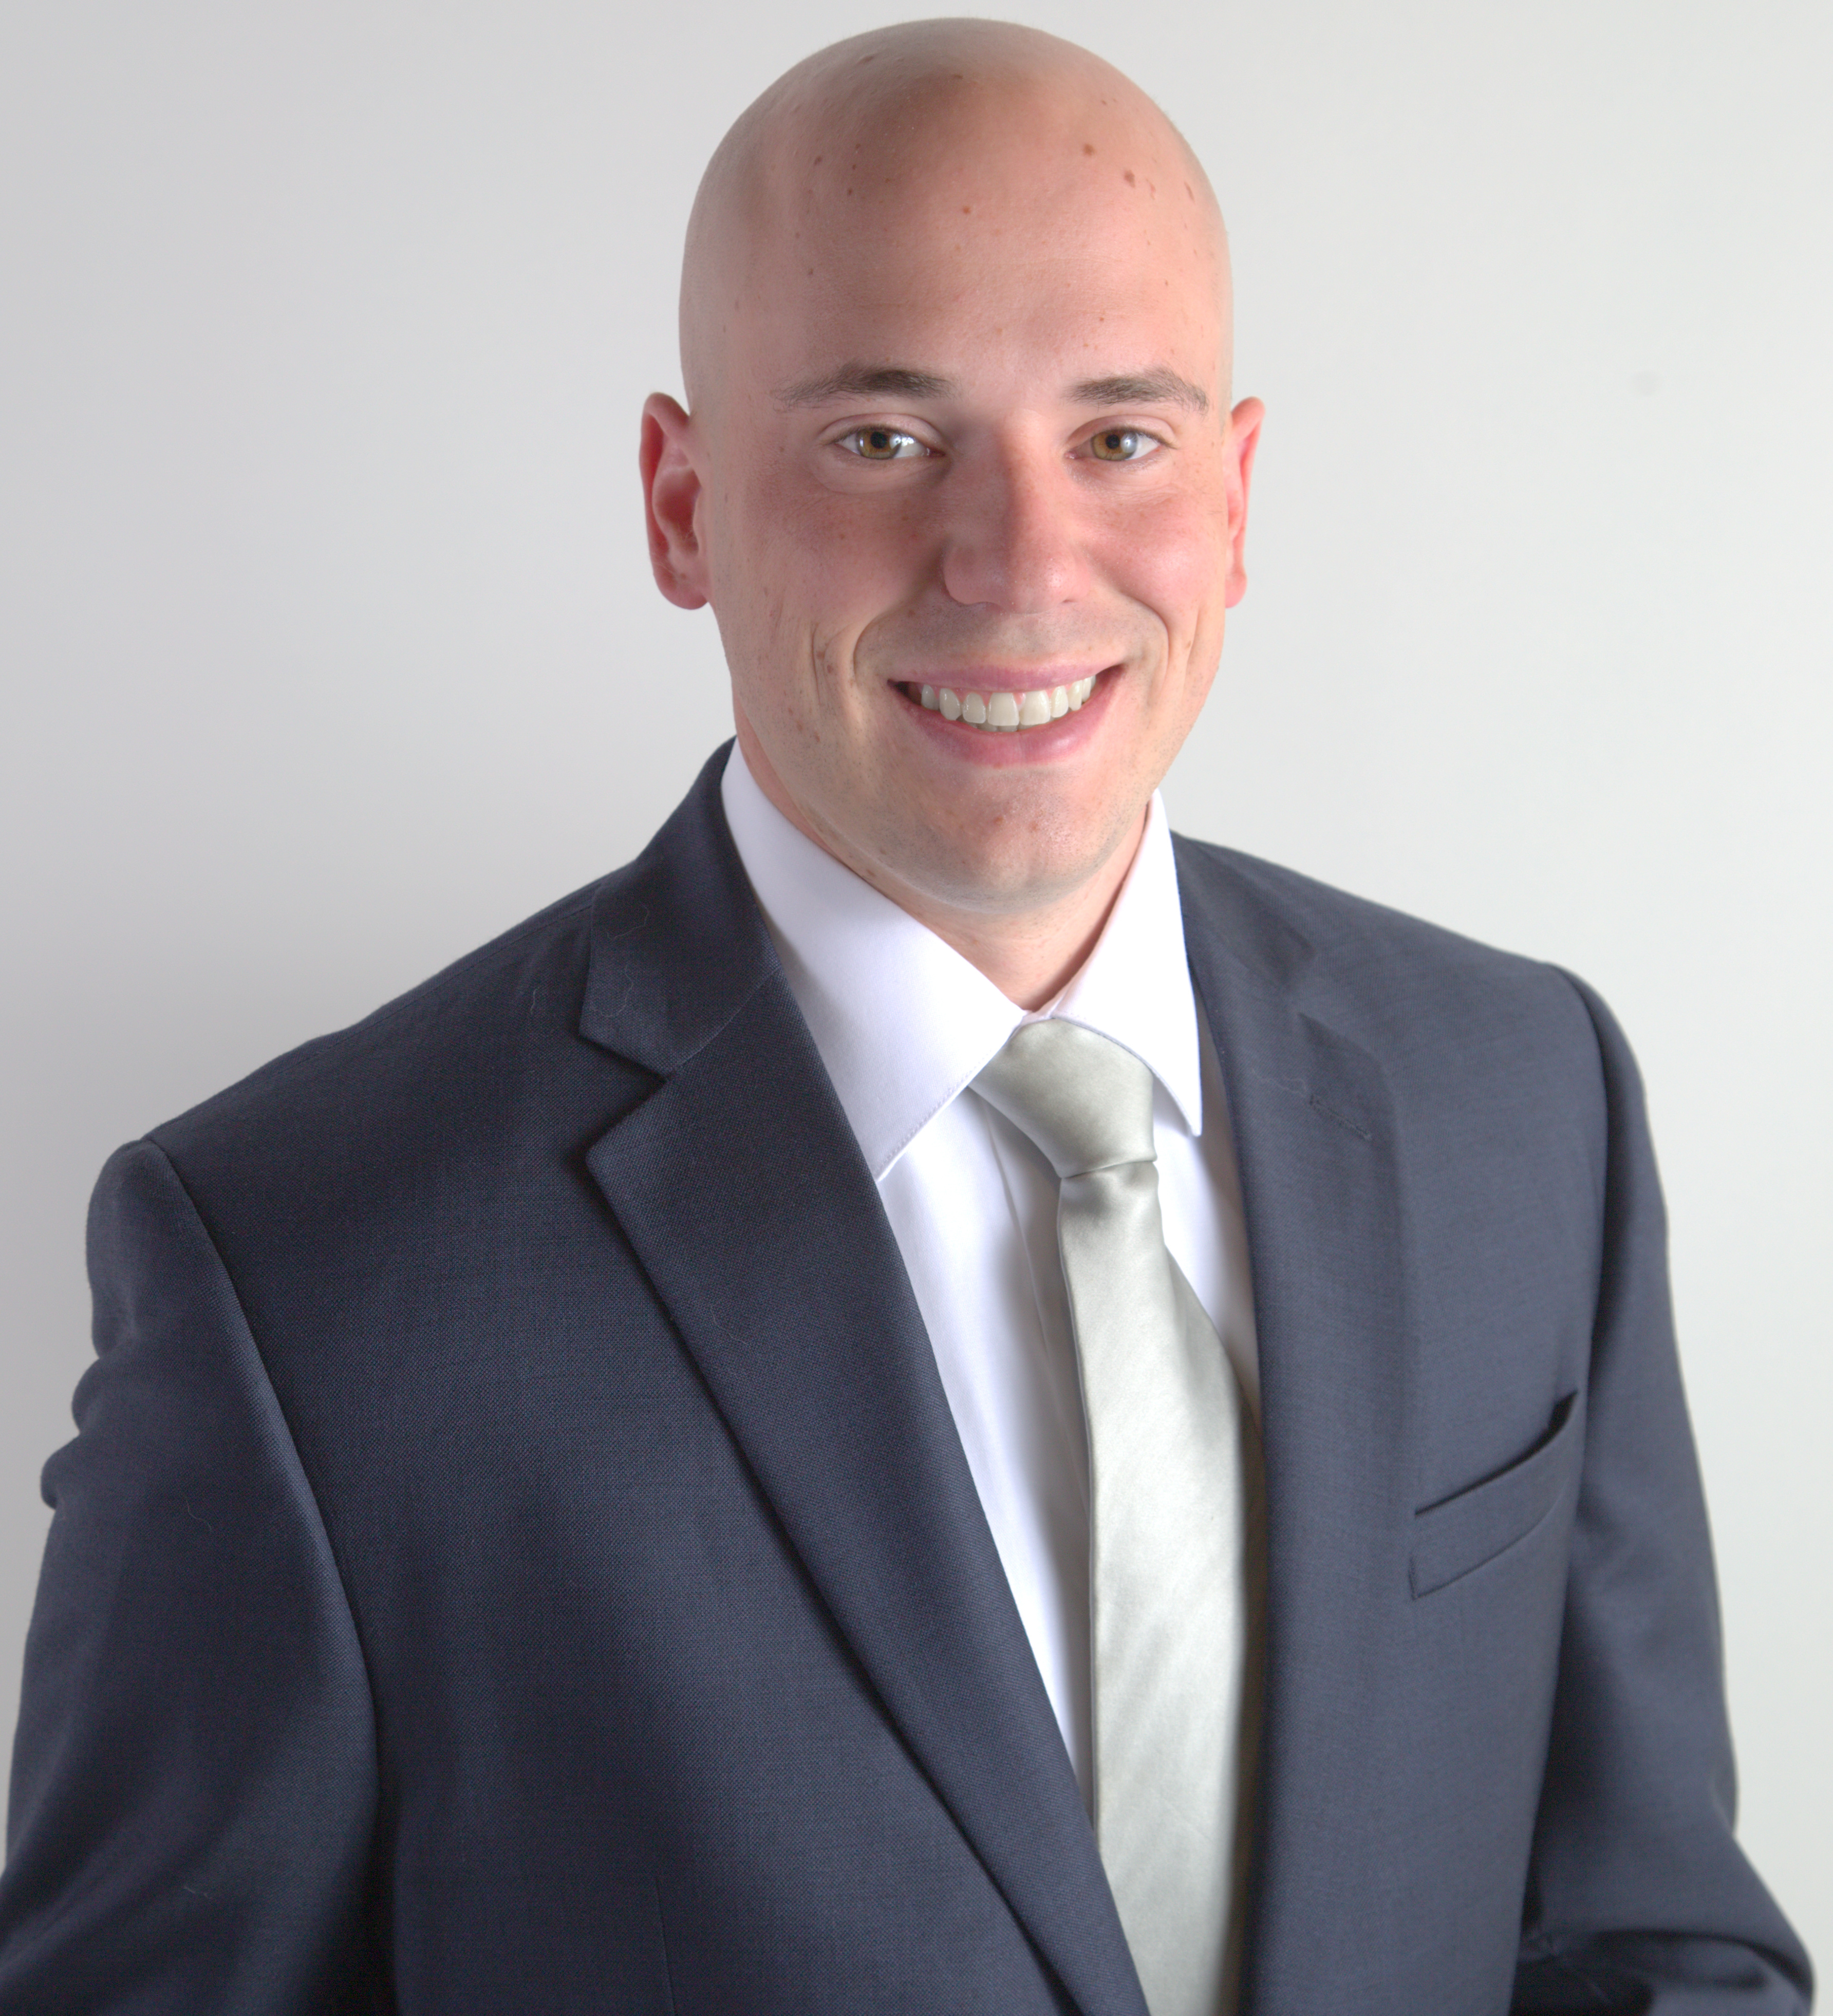 Andrew Mucci - VP and Director of Finance